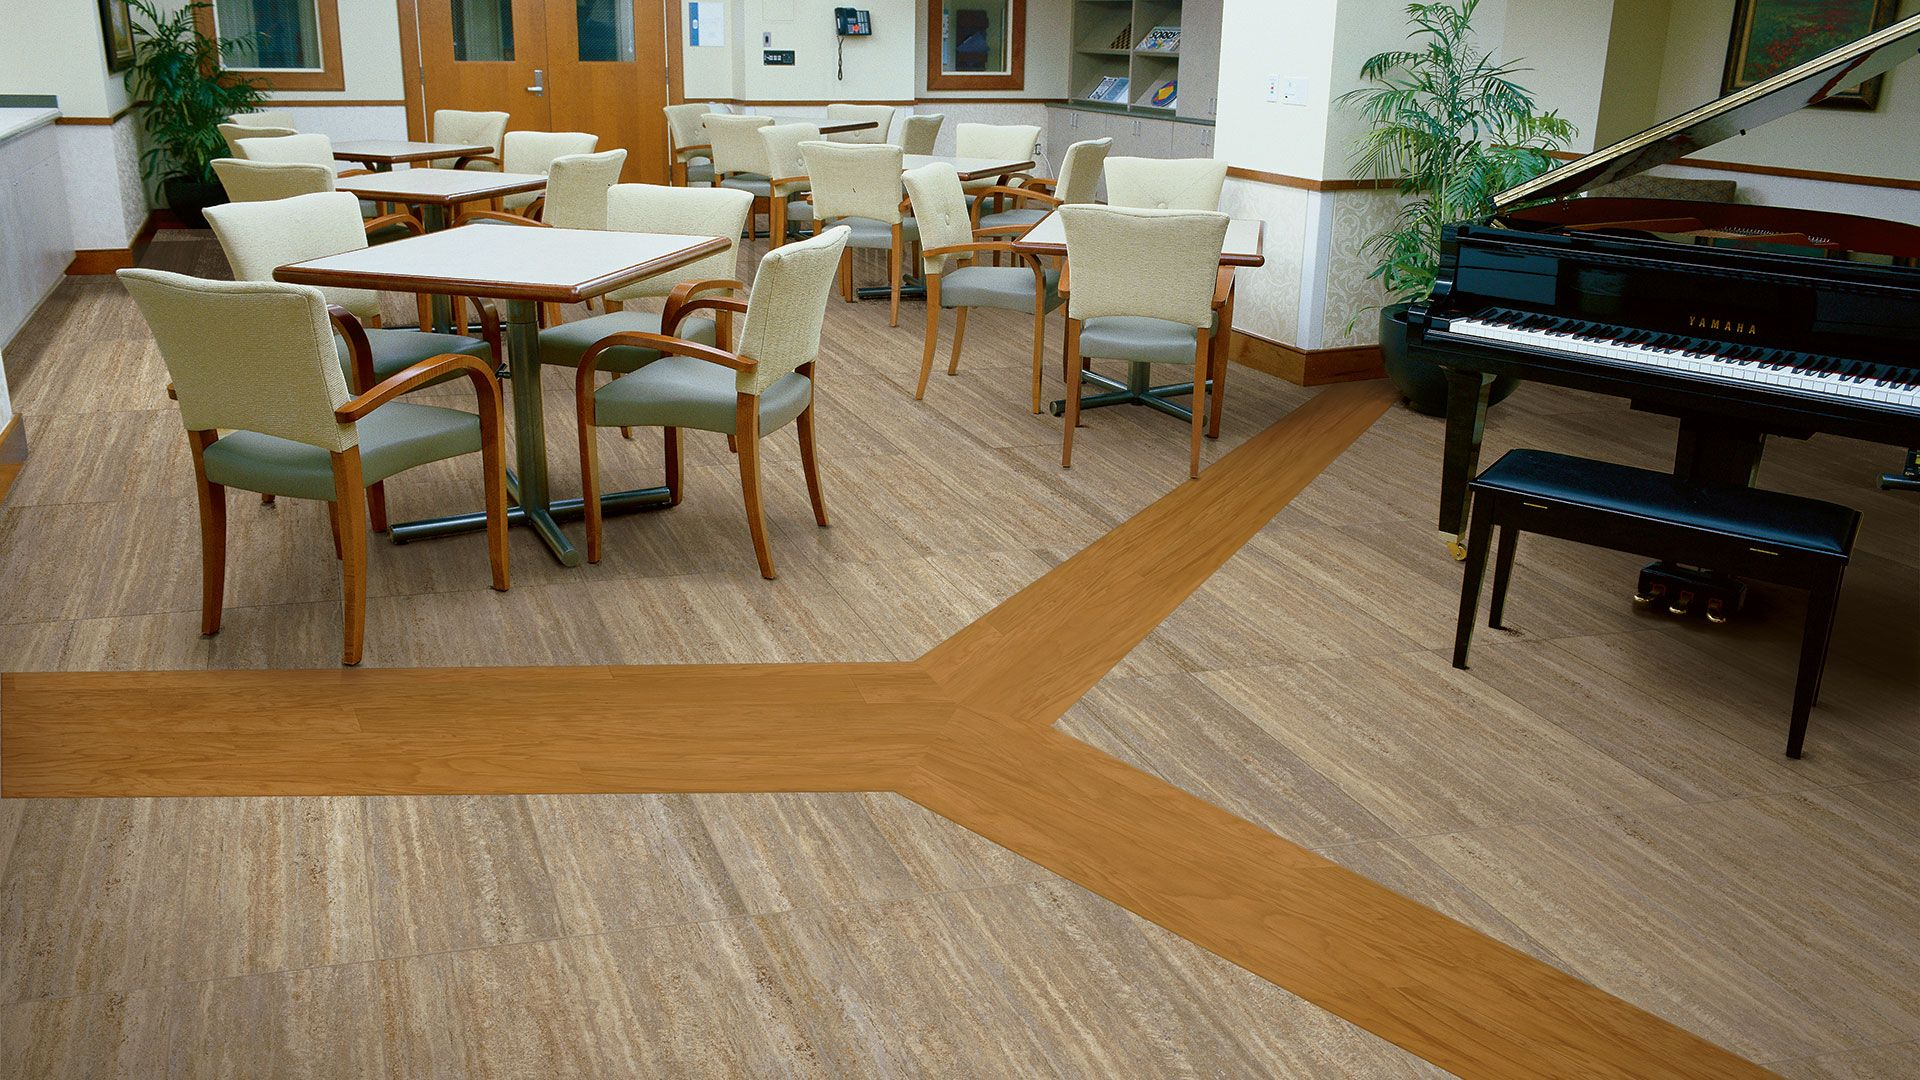 We Provide Collection Of Homogeneous And Heterogeneous Armstrong Vinyl Floor Covering Which May Incl Armstrong Vinyl Flooring Vinyl Flooring Armstrong Ceiling